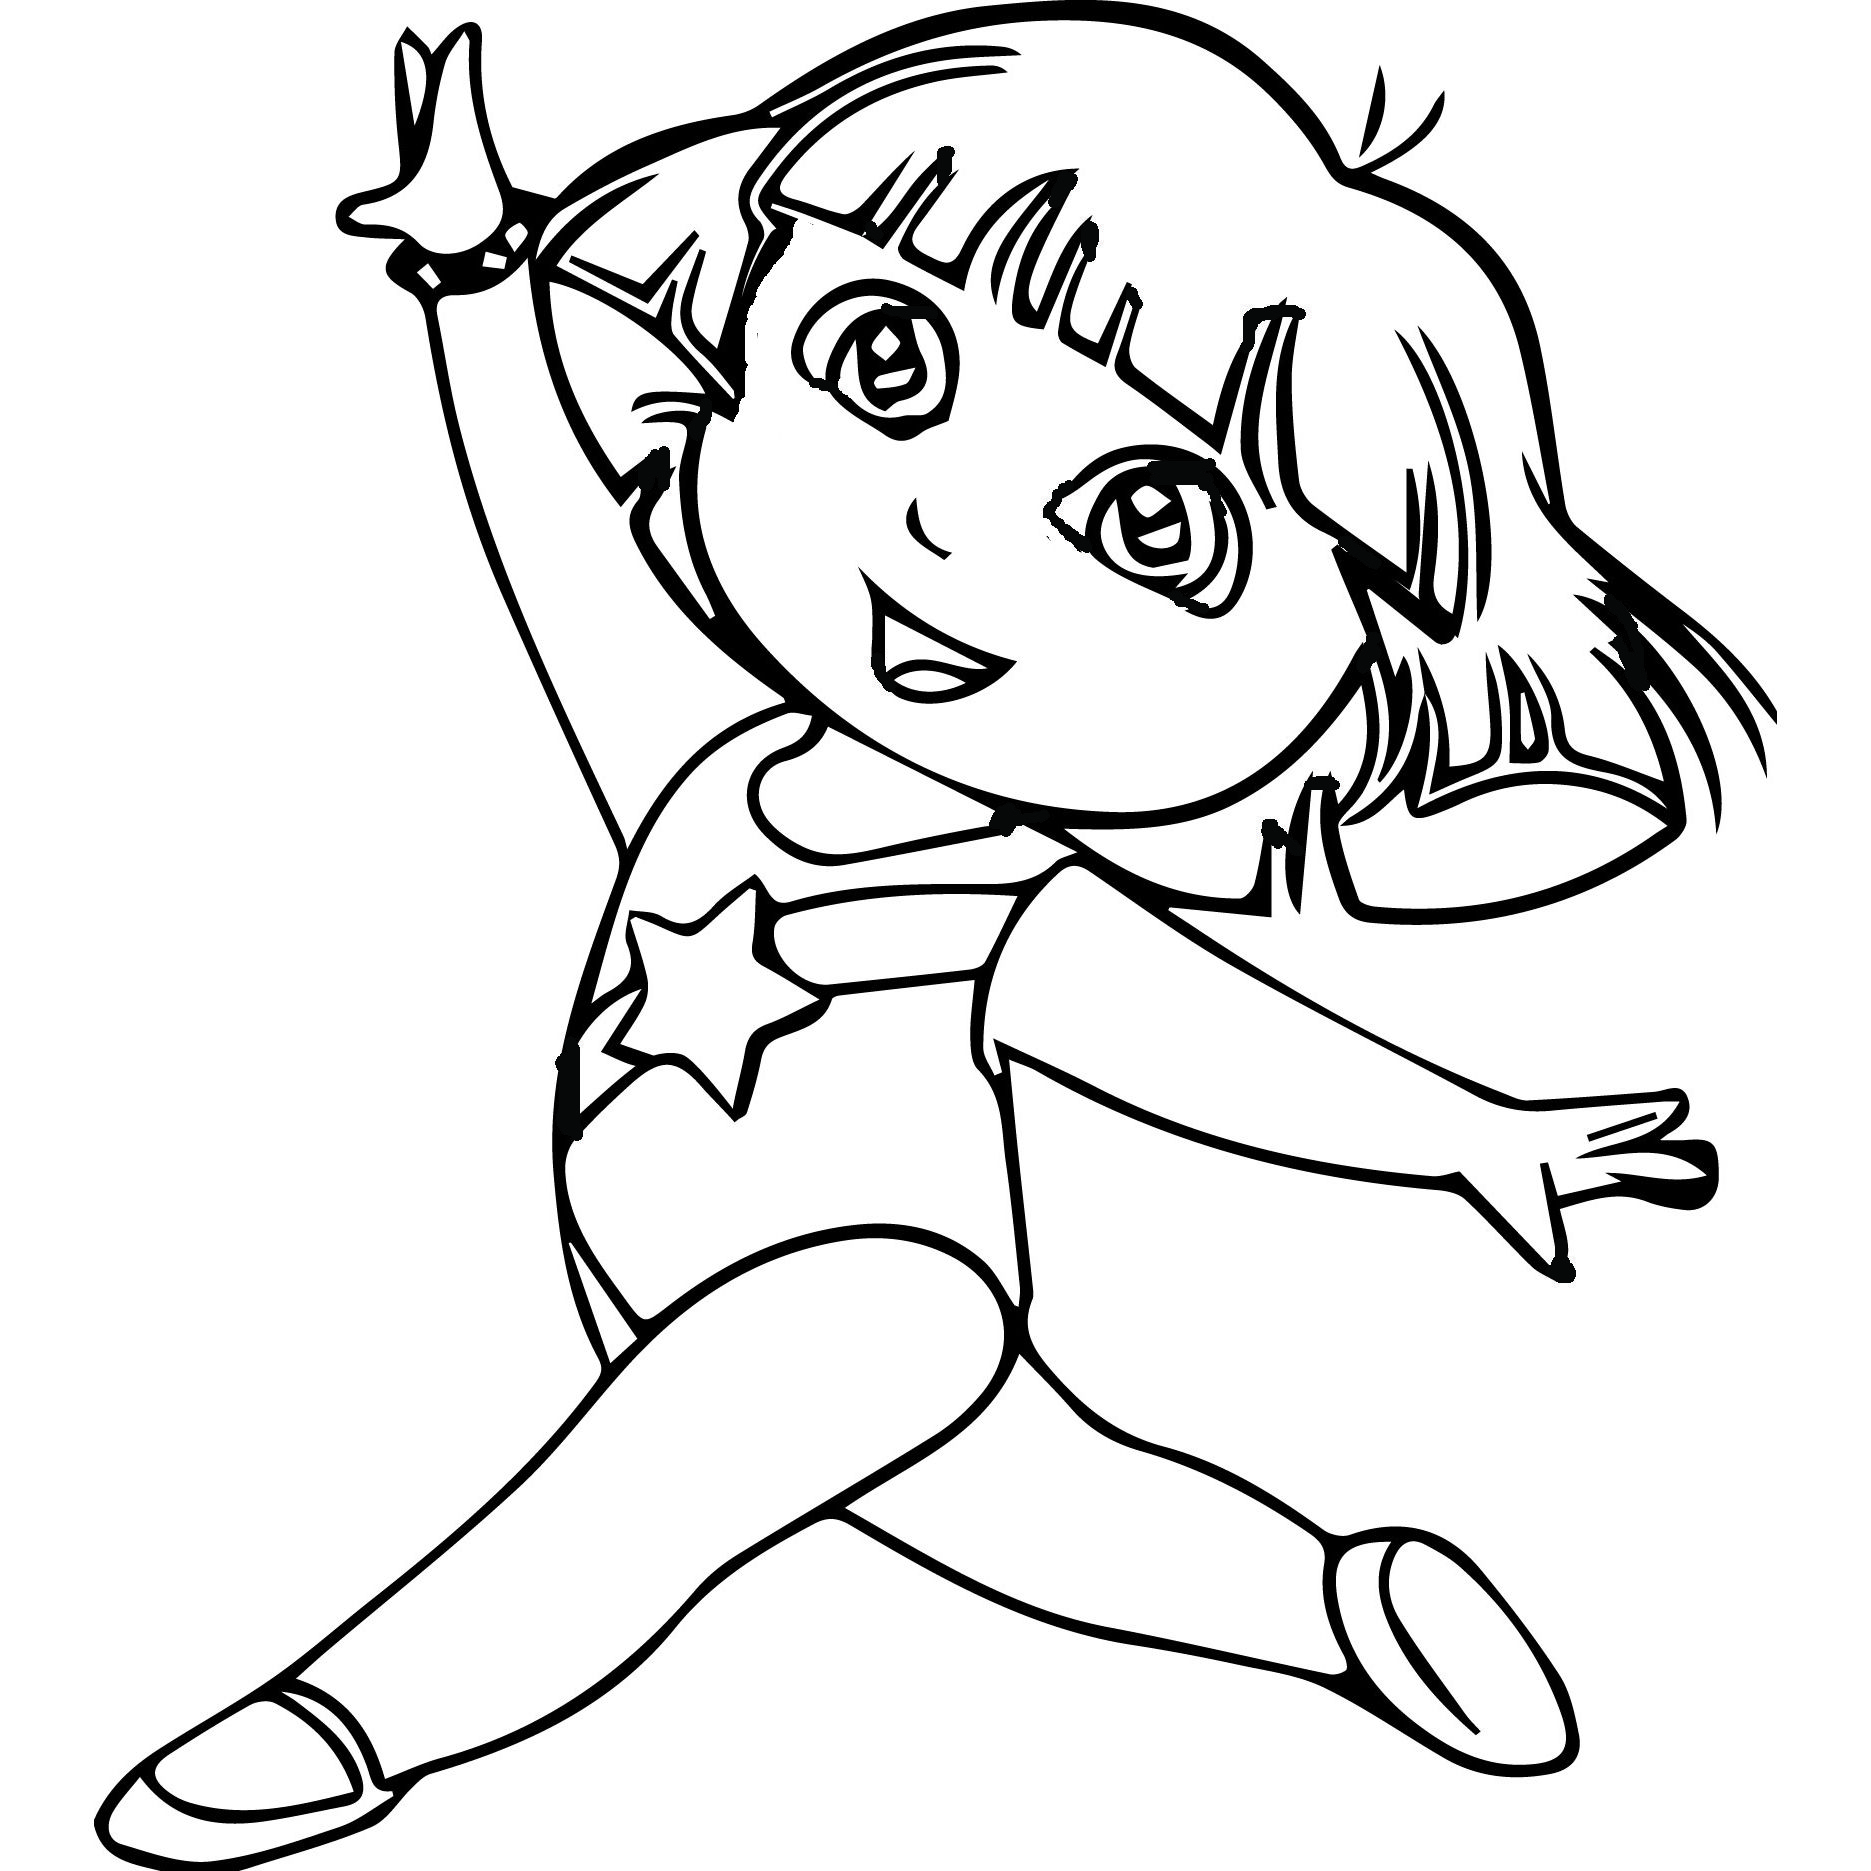 Dora The Explorer Coloring Pages And Sheets For Kids Disney Coloring Pages Dora Coloring Paw Patrol Coloring [ 1871 x 1871 Pixel ]